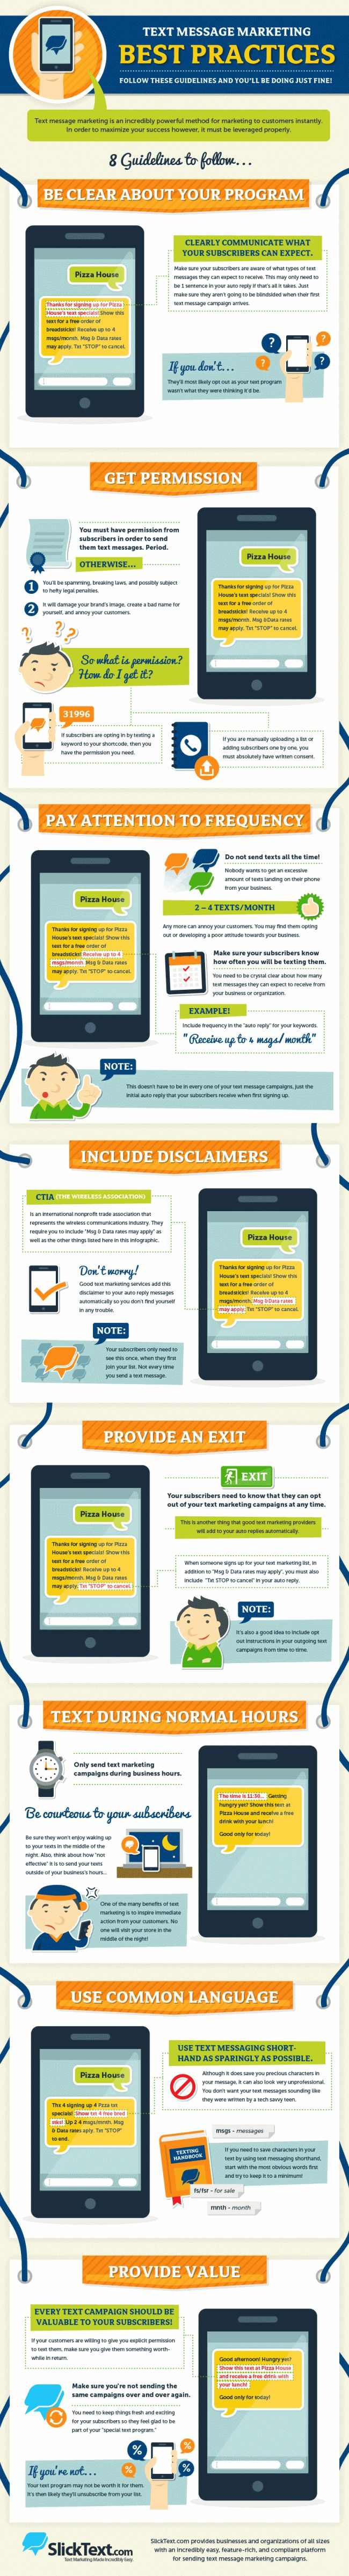 8 best practices for text message marketing #Infographic | via #BornToBeSocial - Pinterest Marketing